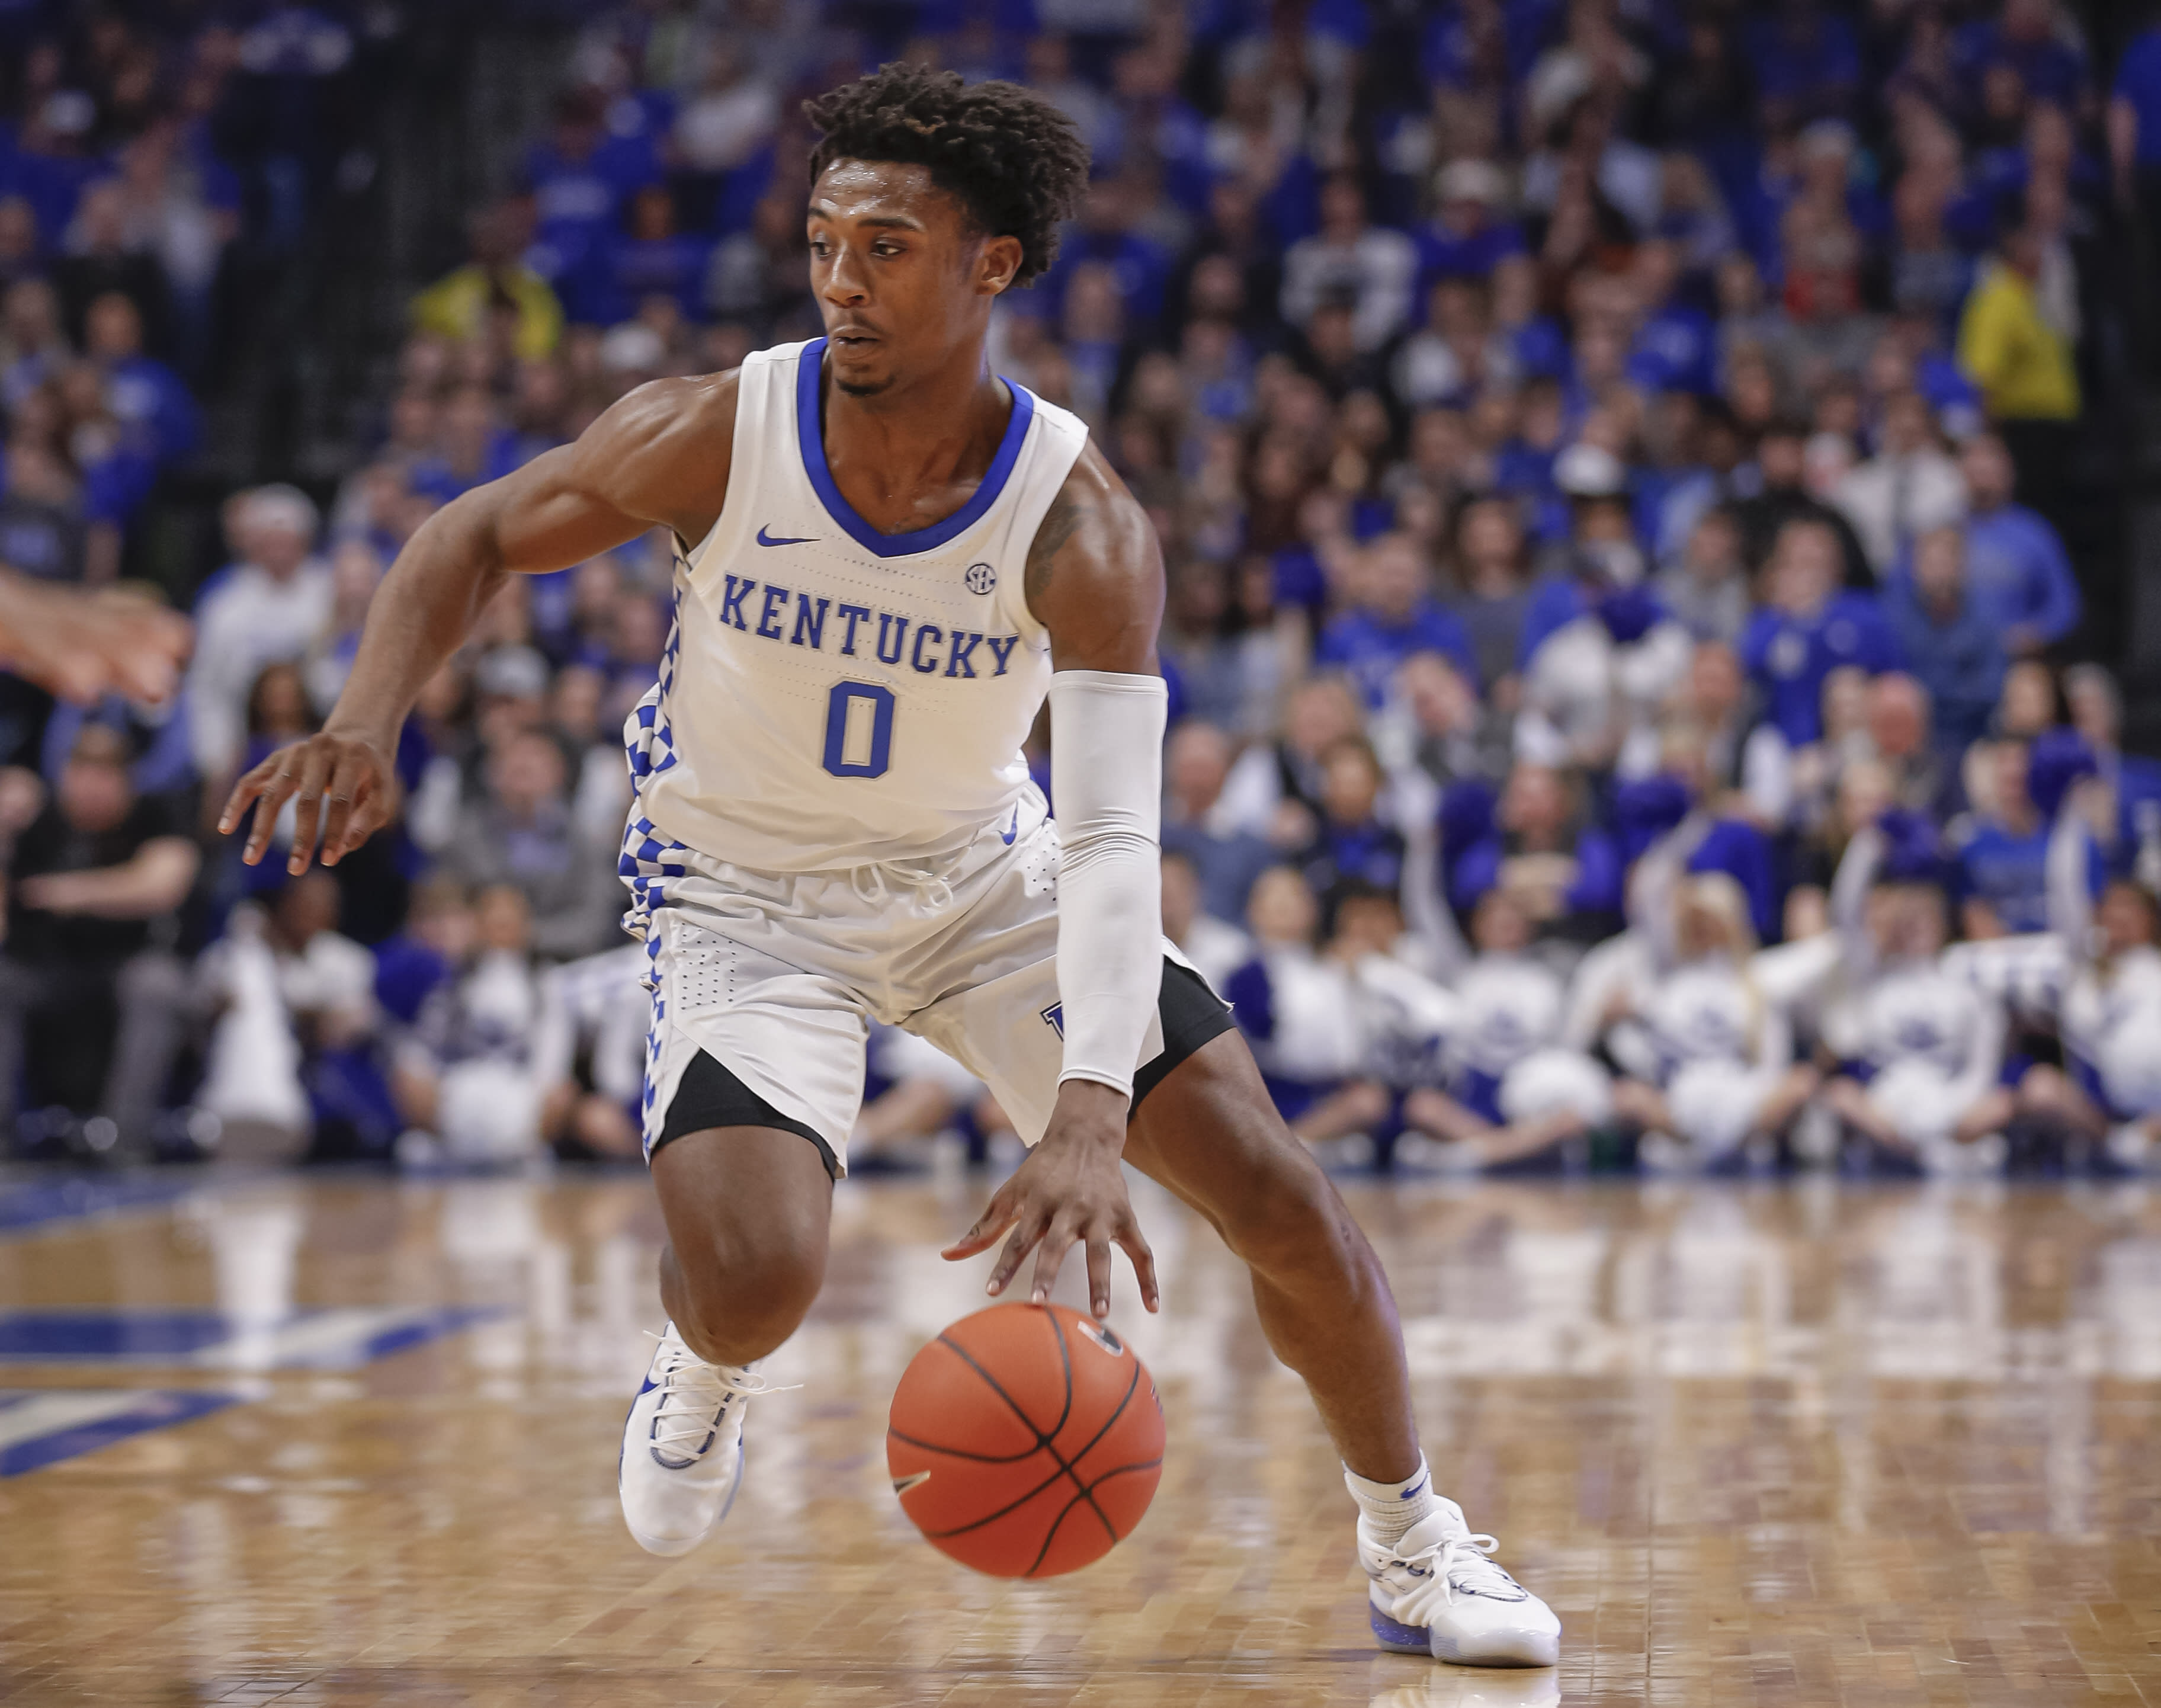 Kentucky's Ashton Hagans on personal leave